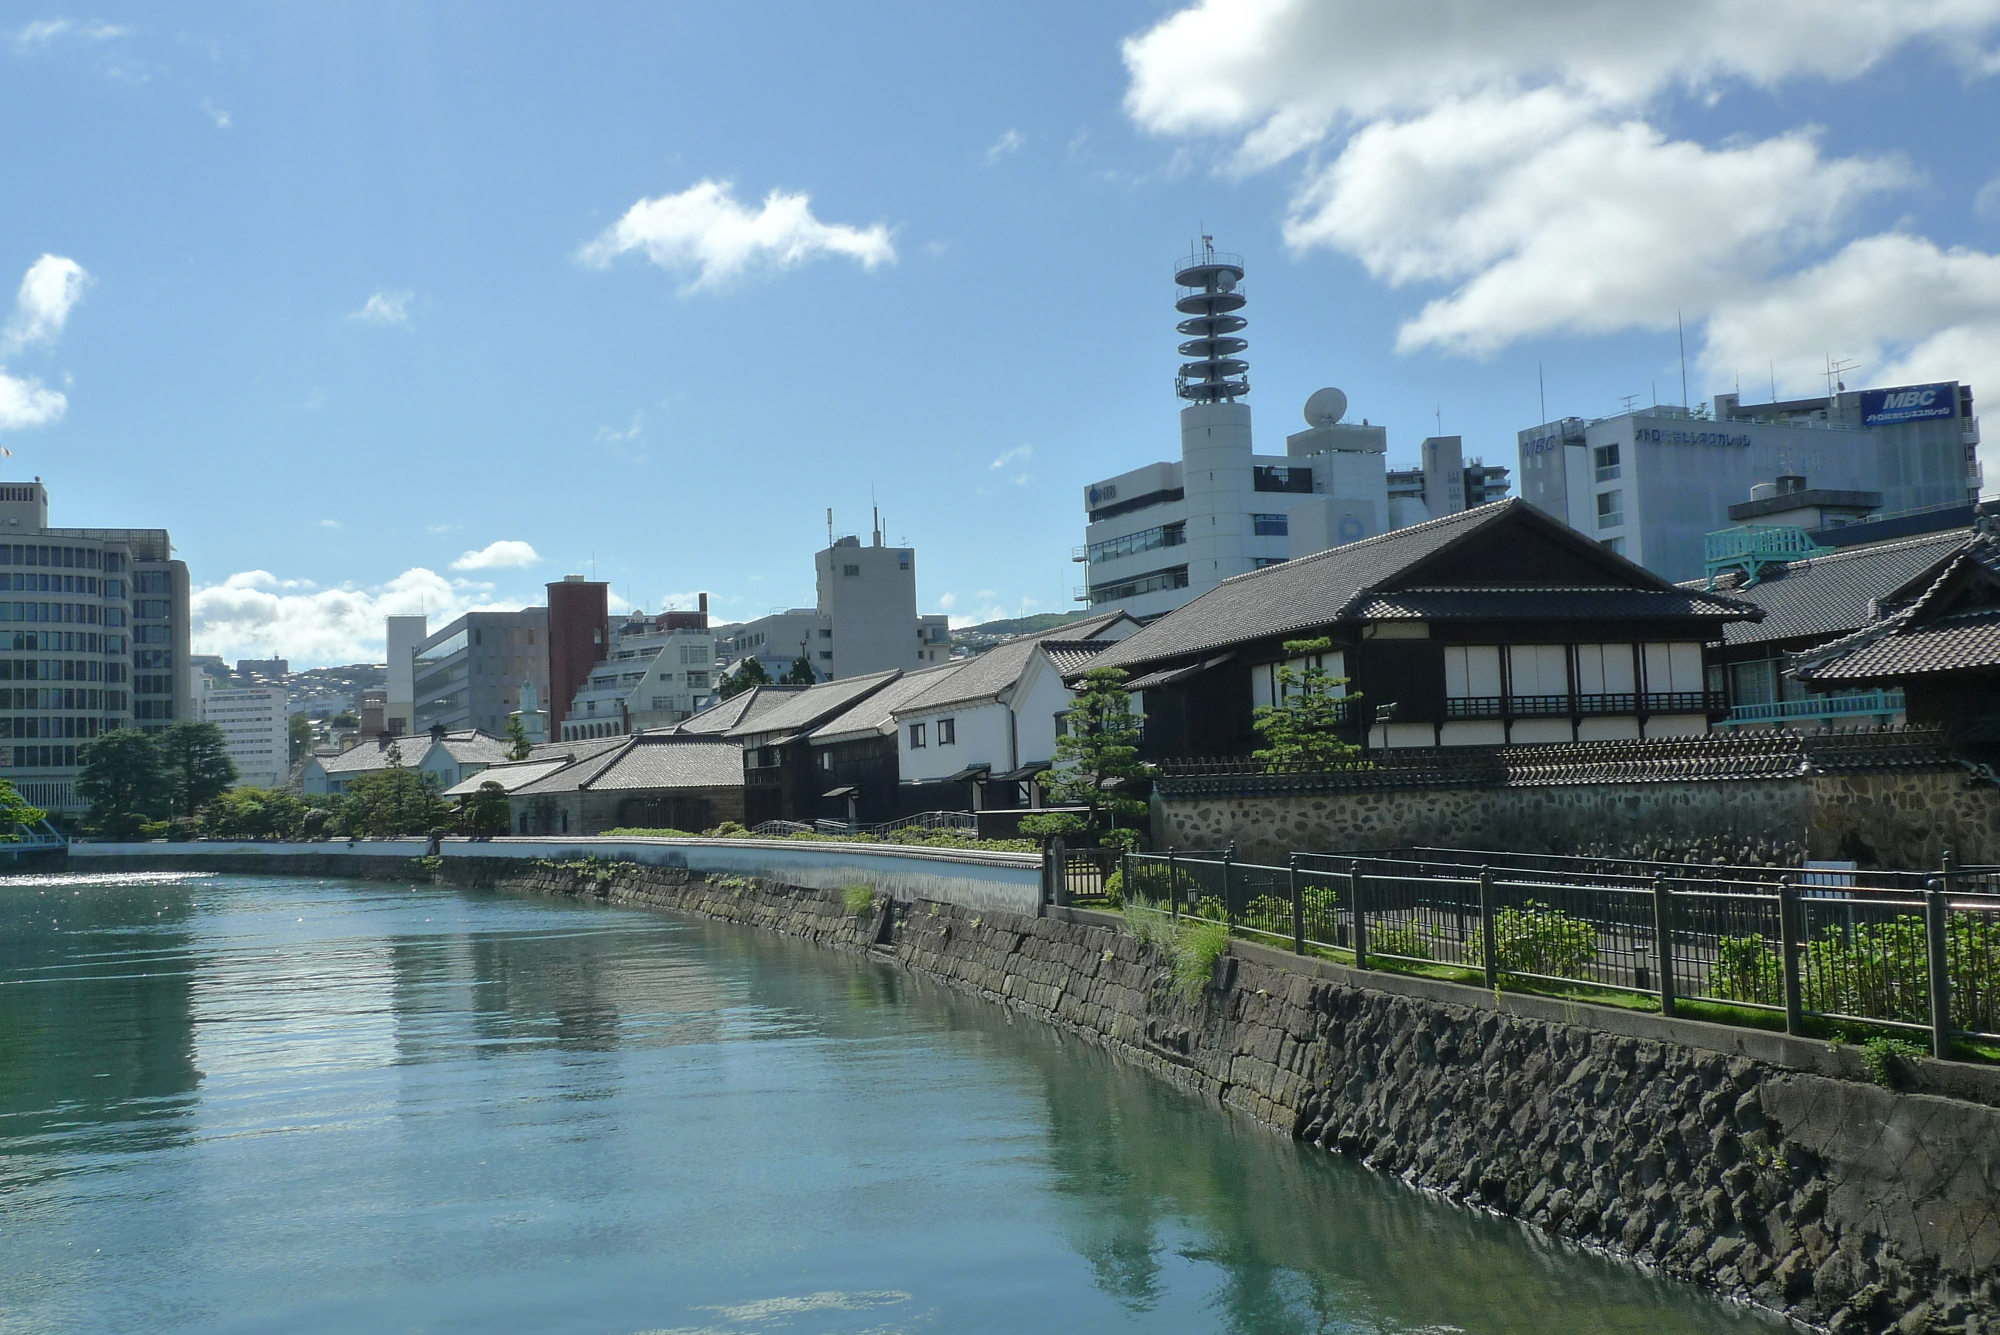 Dejima am Kanal in Nagasaki.